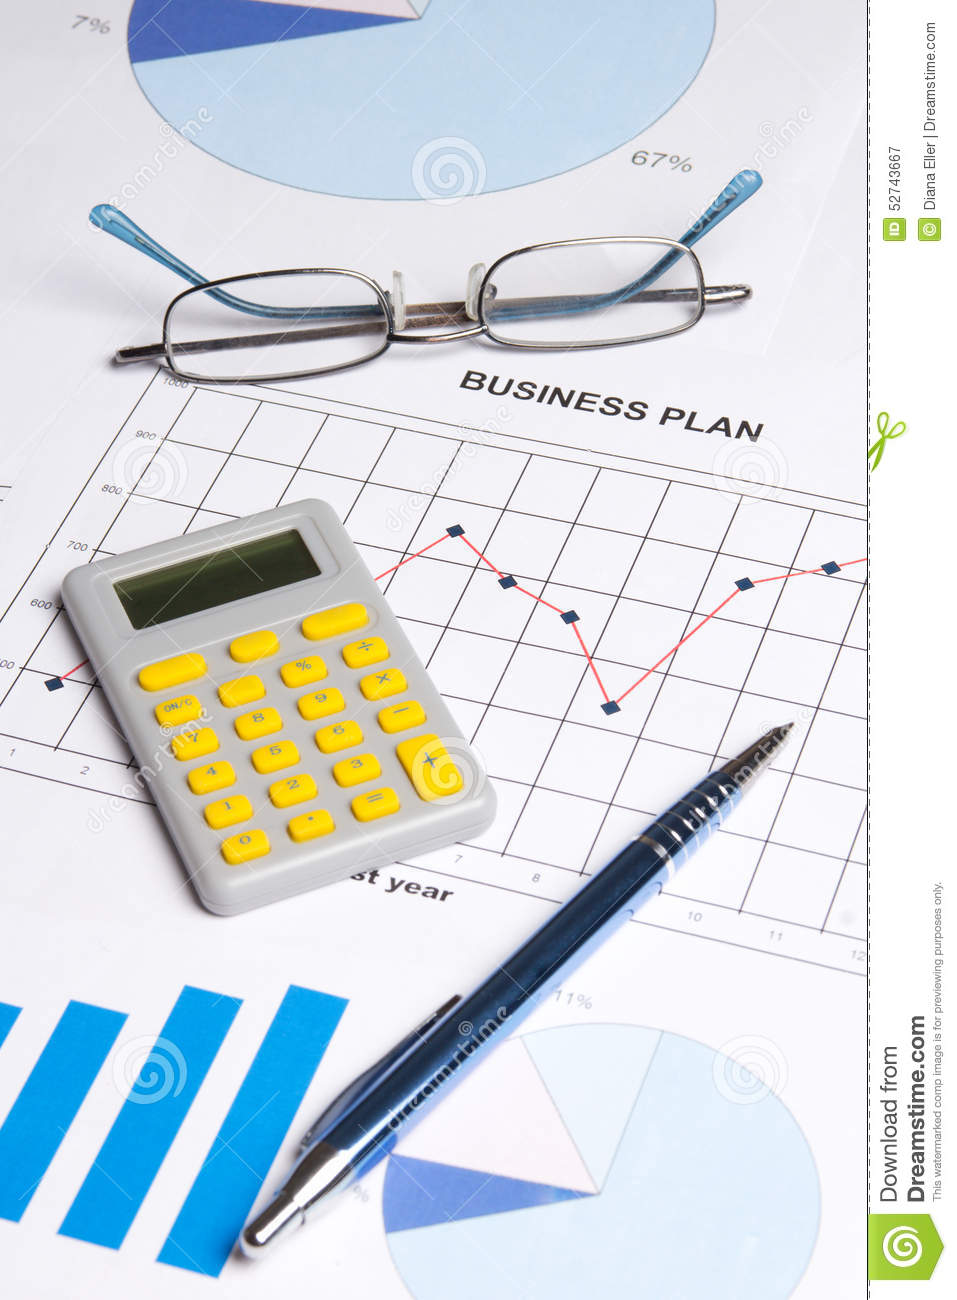 Business Plan With Graphs, Charts And Calculator Stock Photo ...